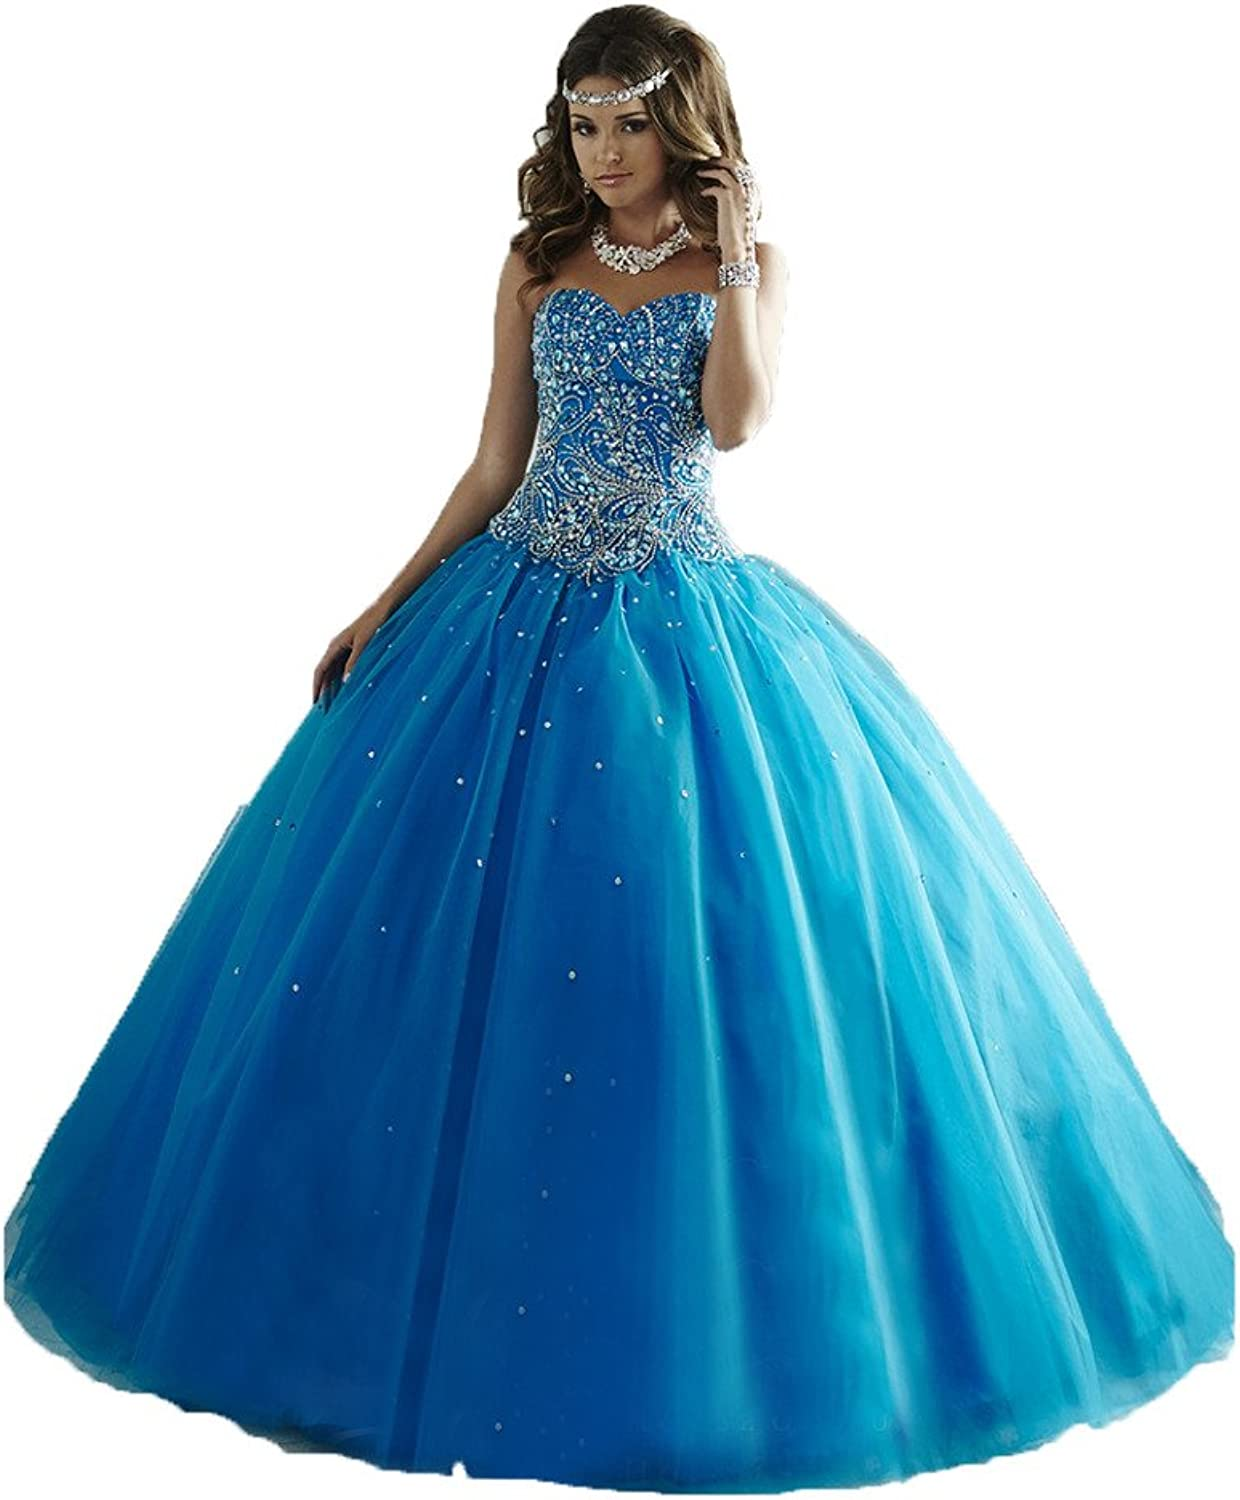 HSDJ Women's Ball Gowns Prom Sweert 16 Tulle Beaded Quinceanera Dresses